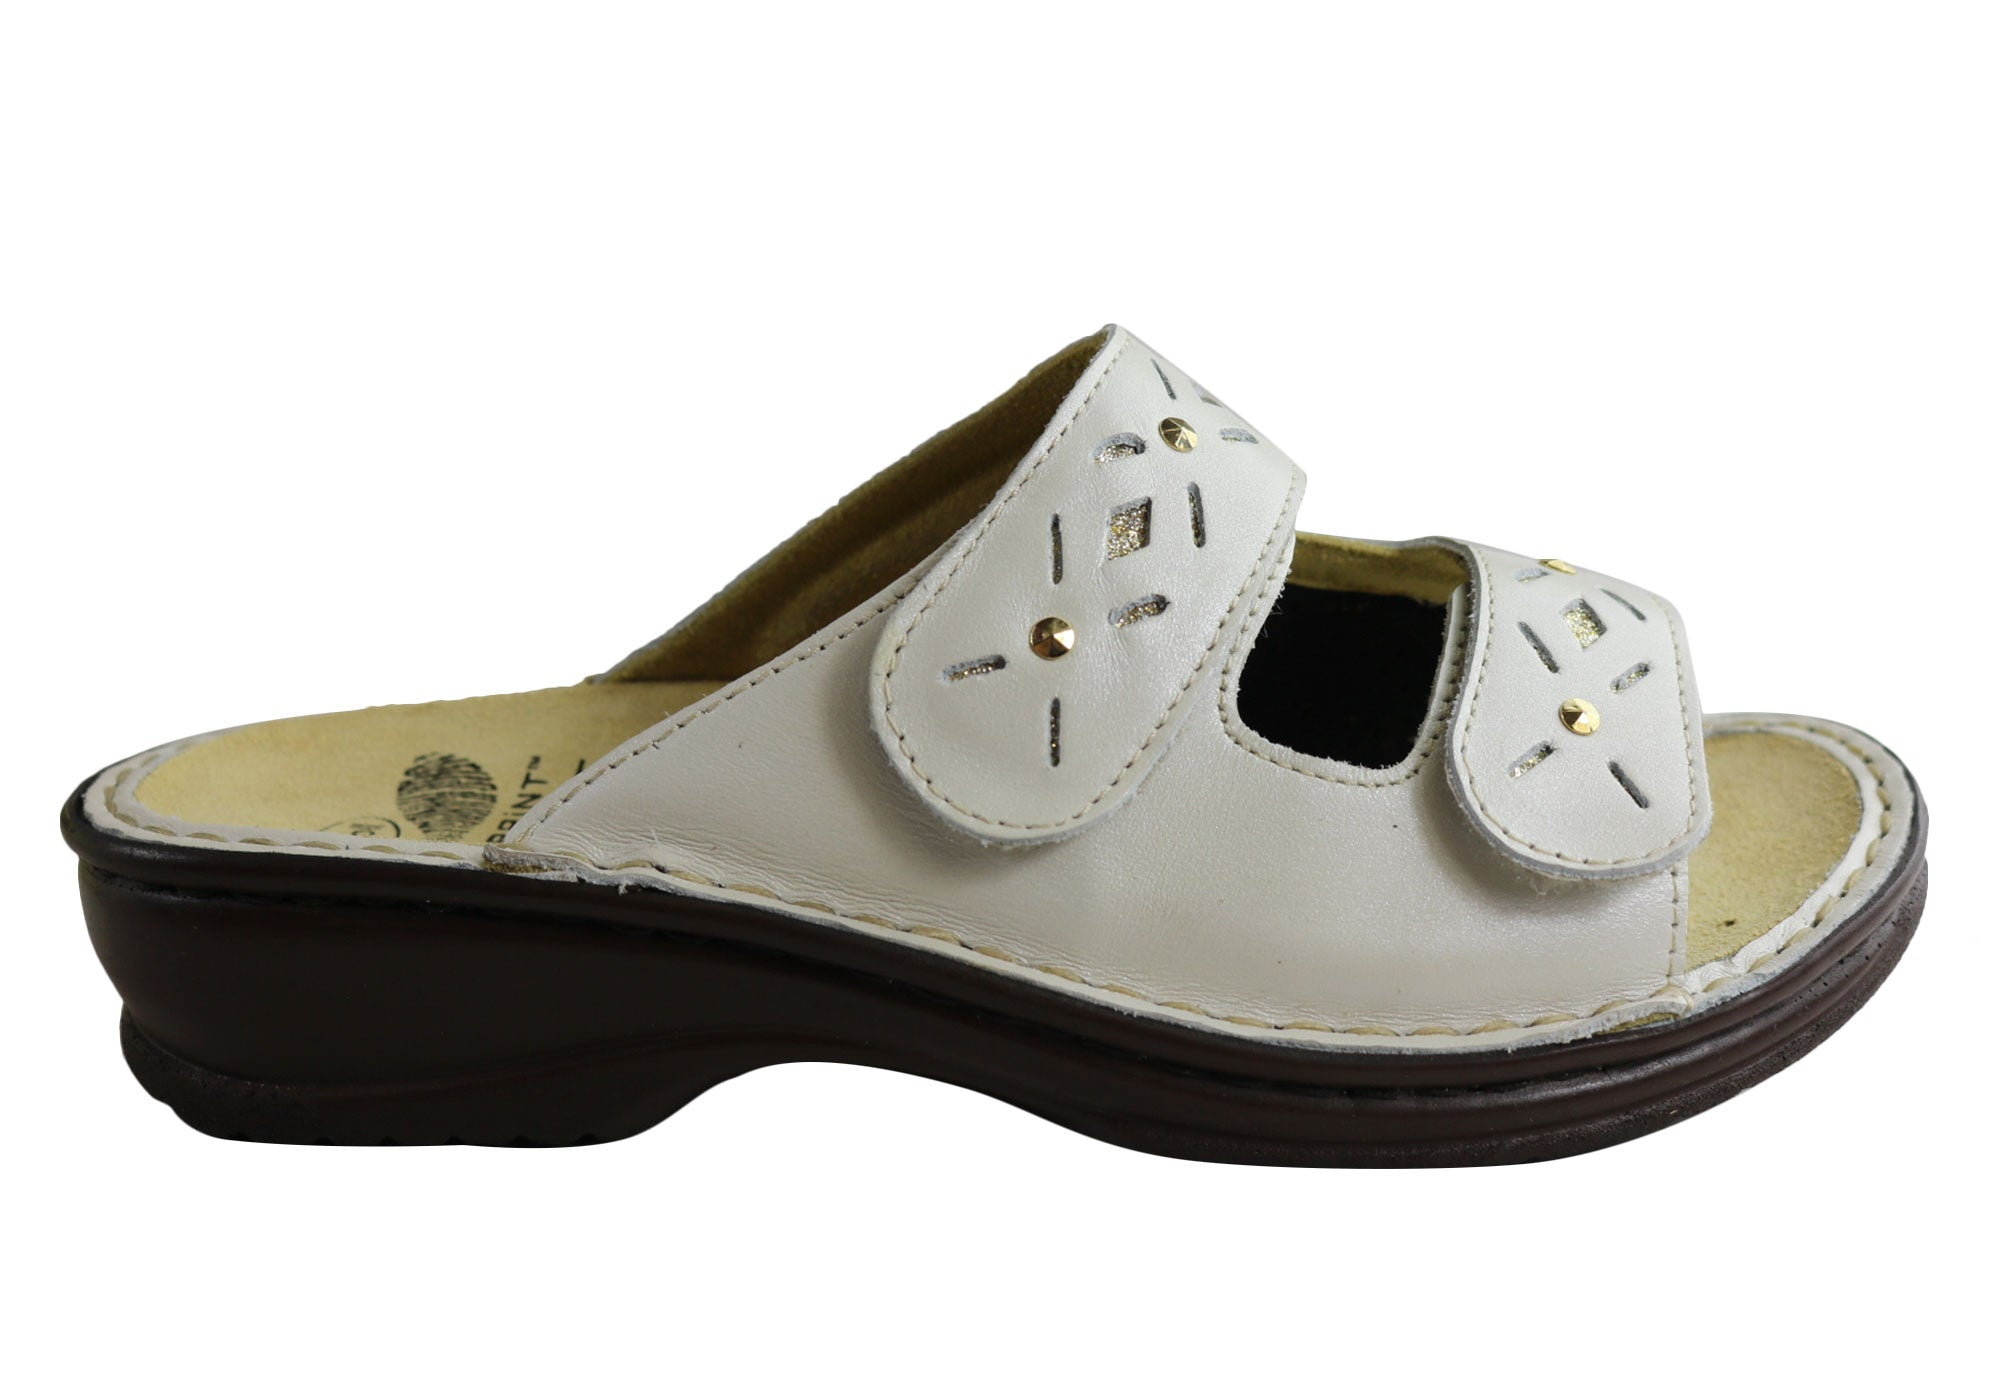 Details about Brand New Scholl Bioprint Joline Womens Comfortable Adjustable Leather Sandals